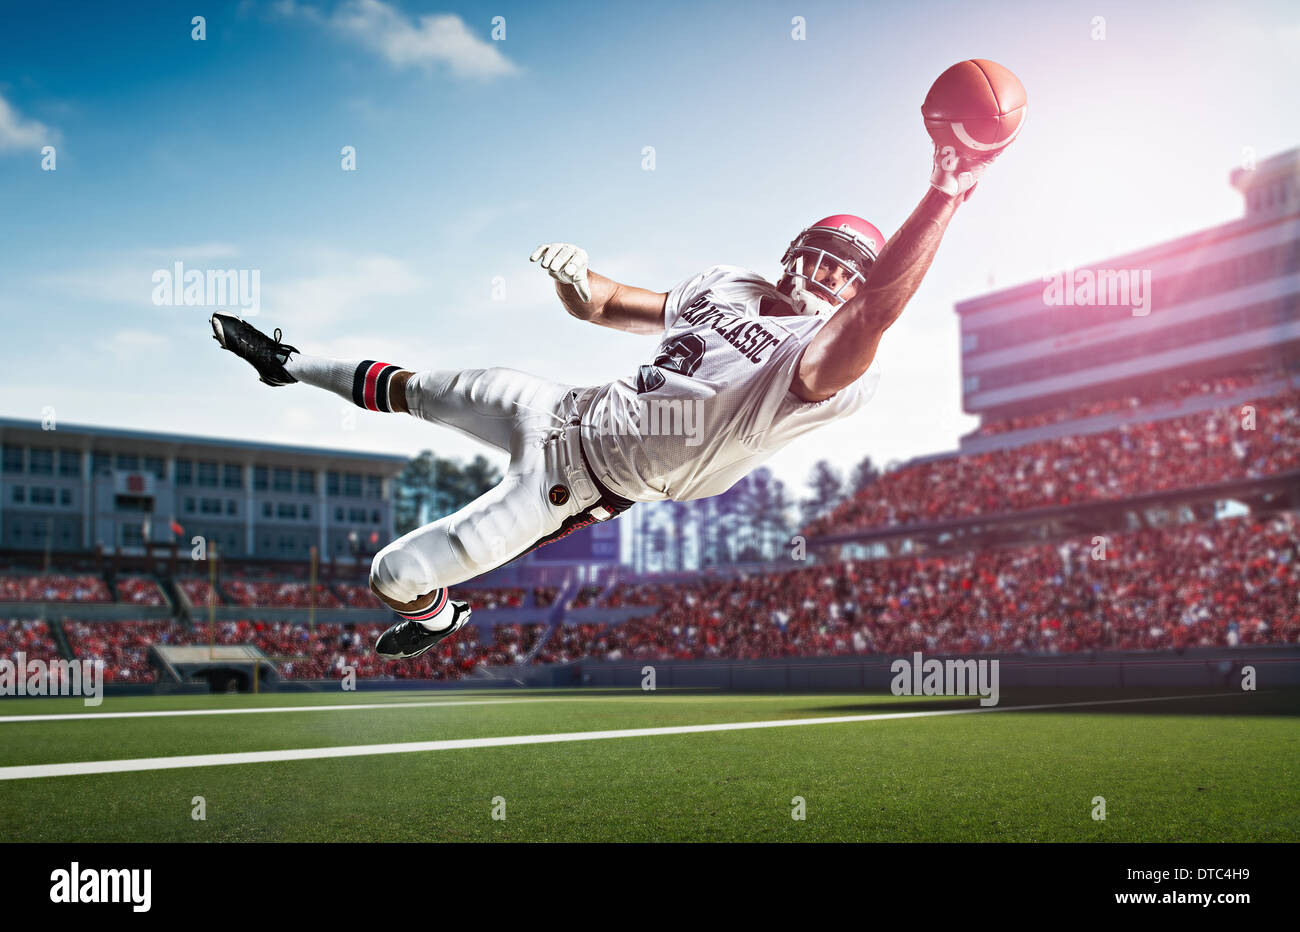 American football player catching ball mid air dans le stade Photo Stock